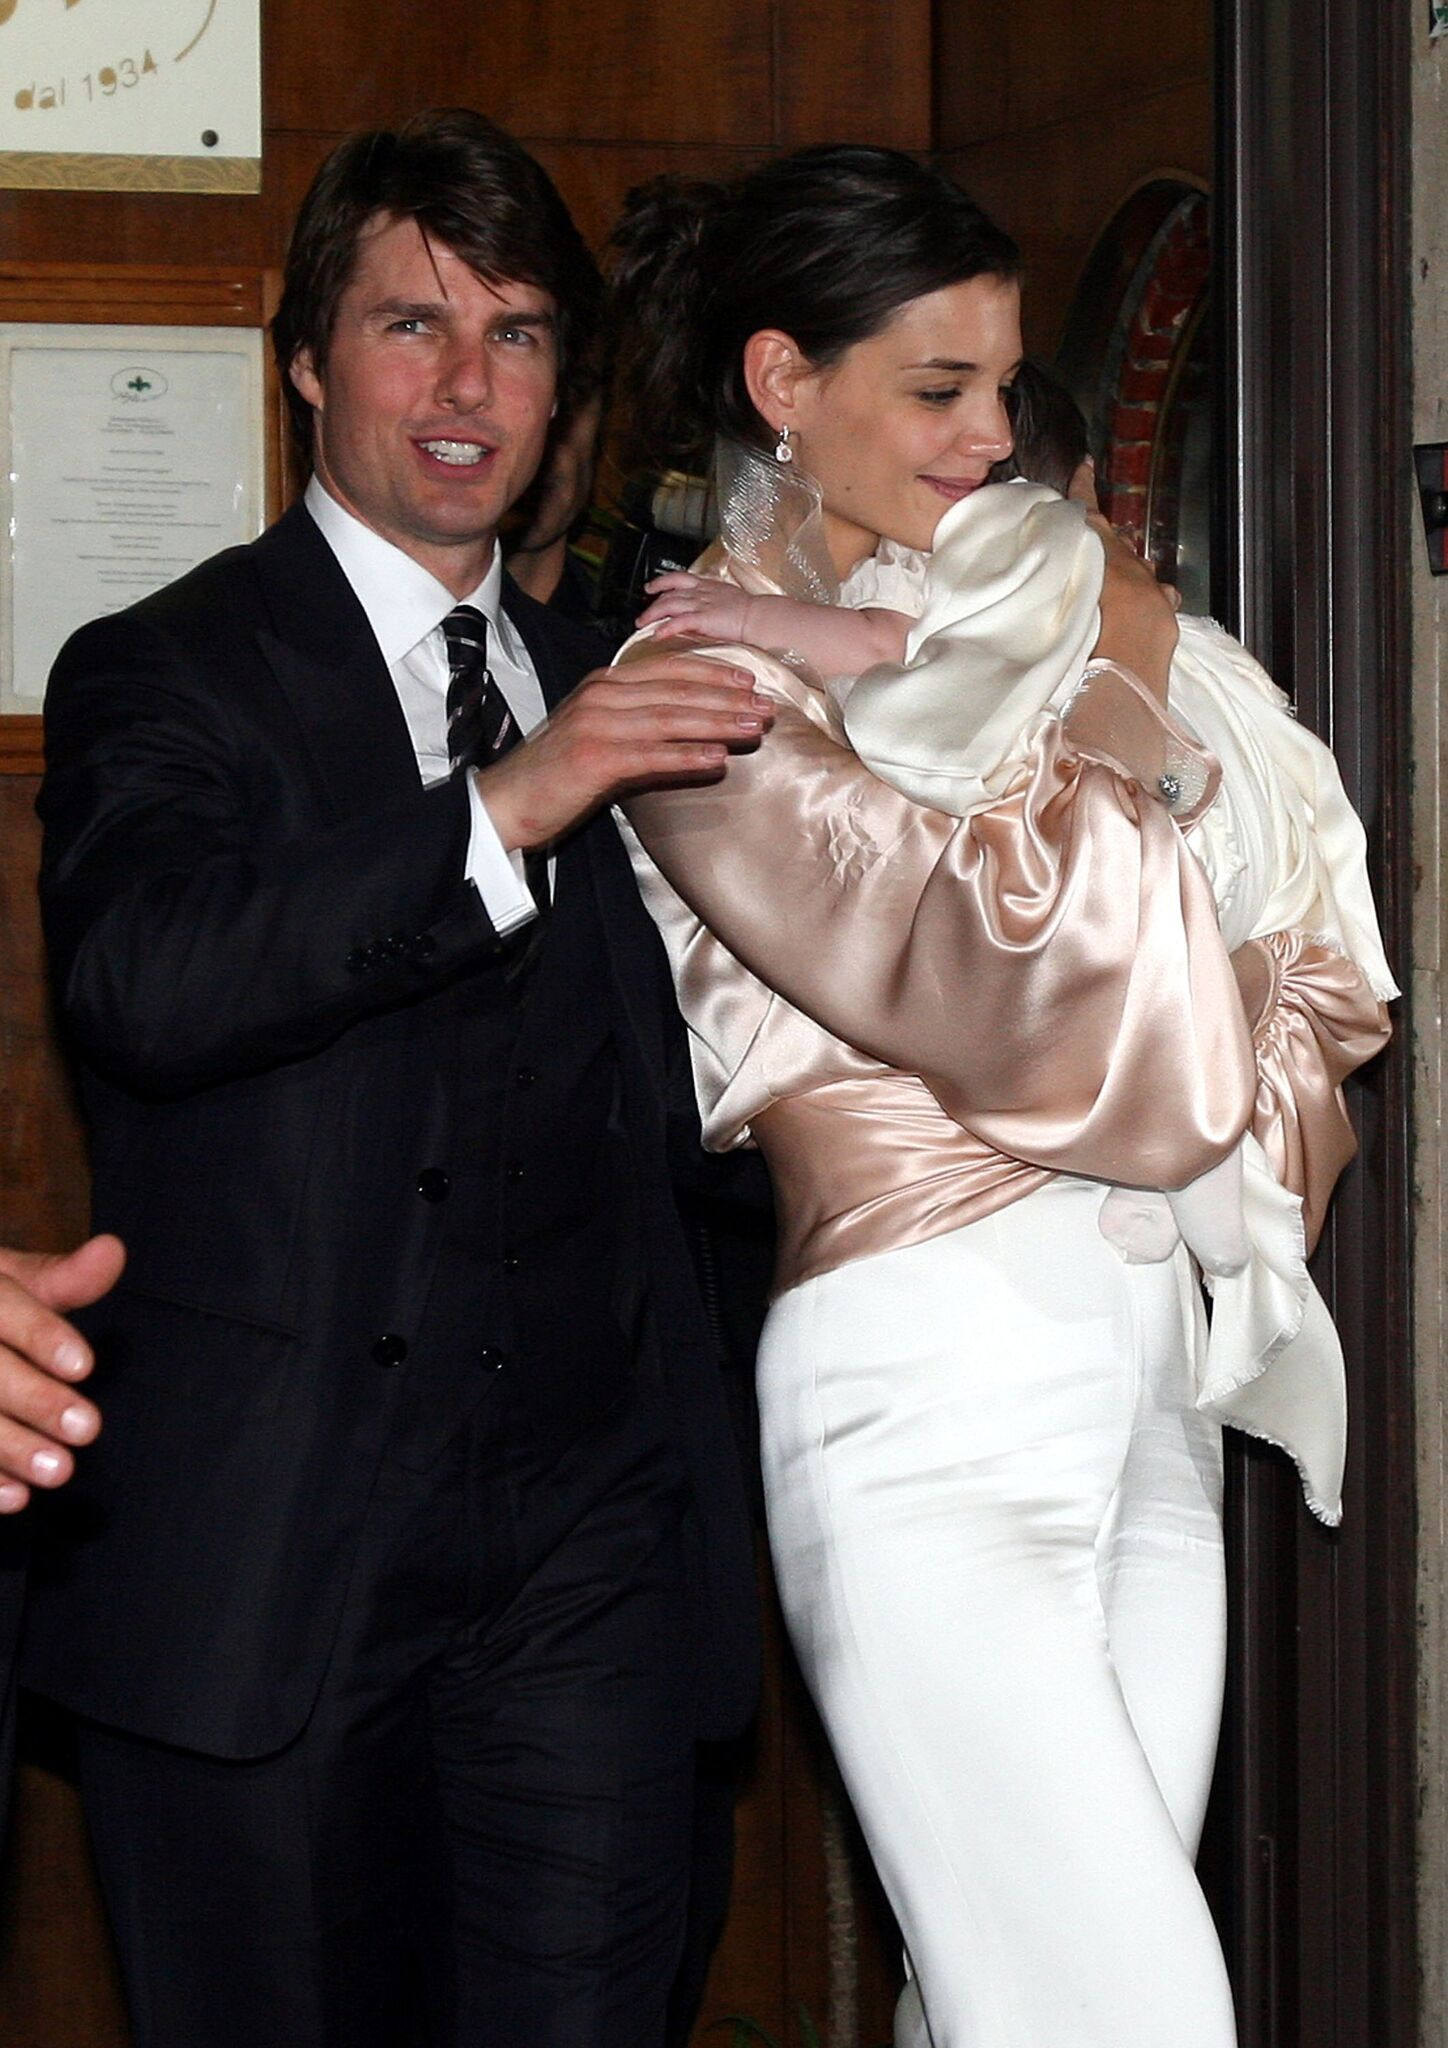 Tom Cruise, Katie Holmes and their daughter Suri leave the restaurant in central Rome, as part of Katie Holmes and Tom Cruise wedding | Getty Images